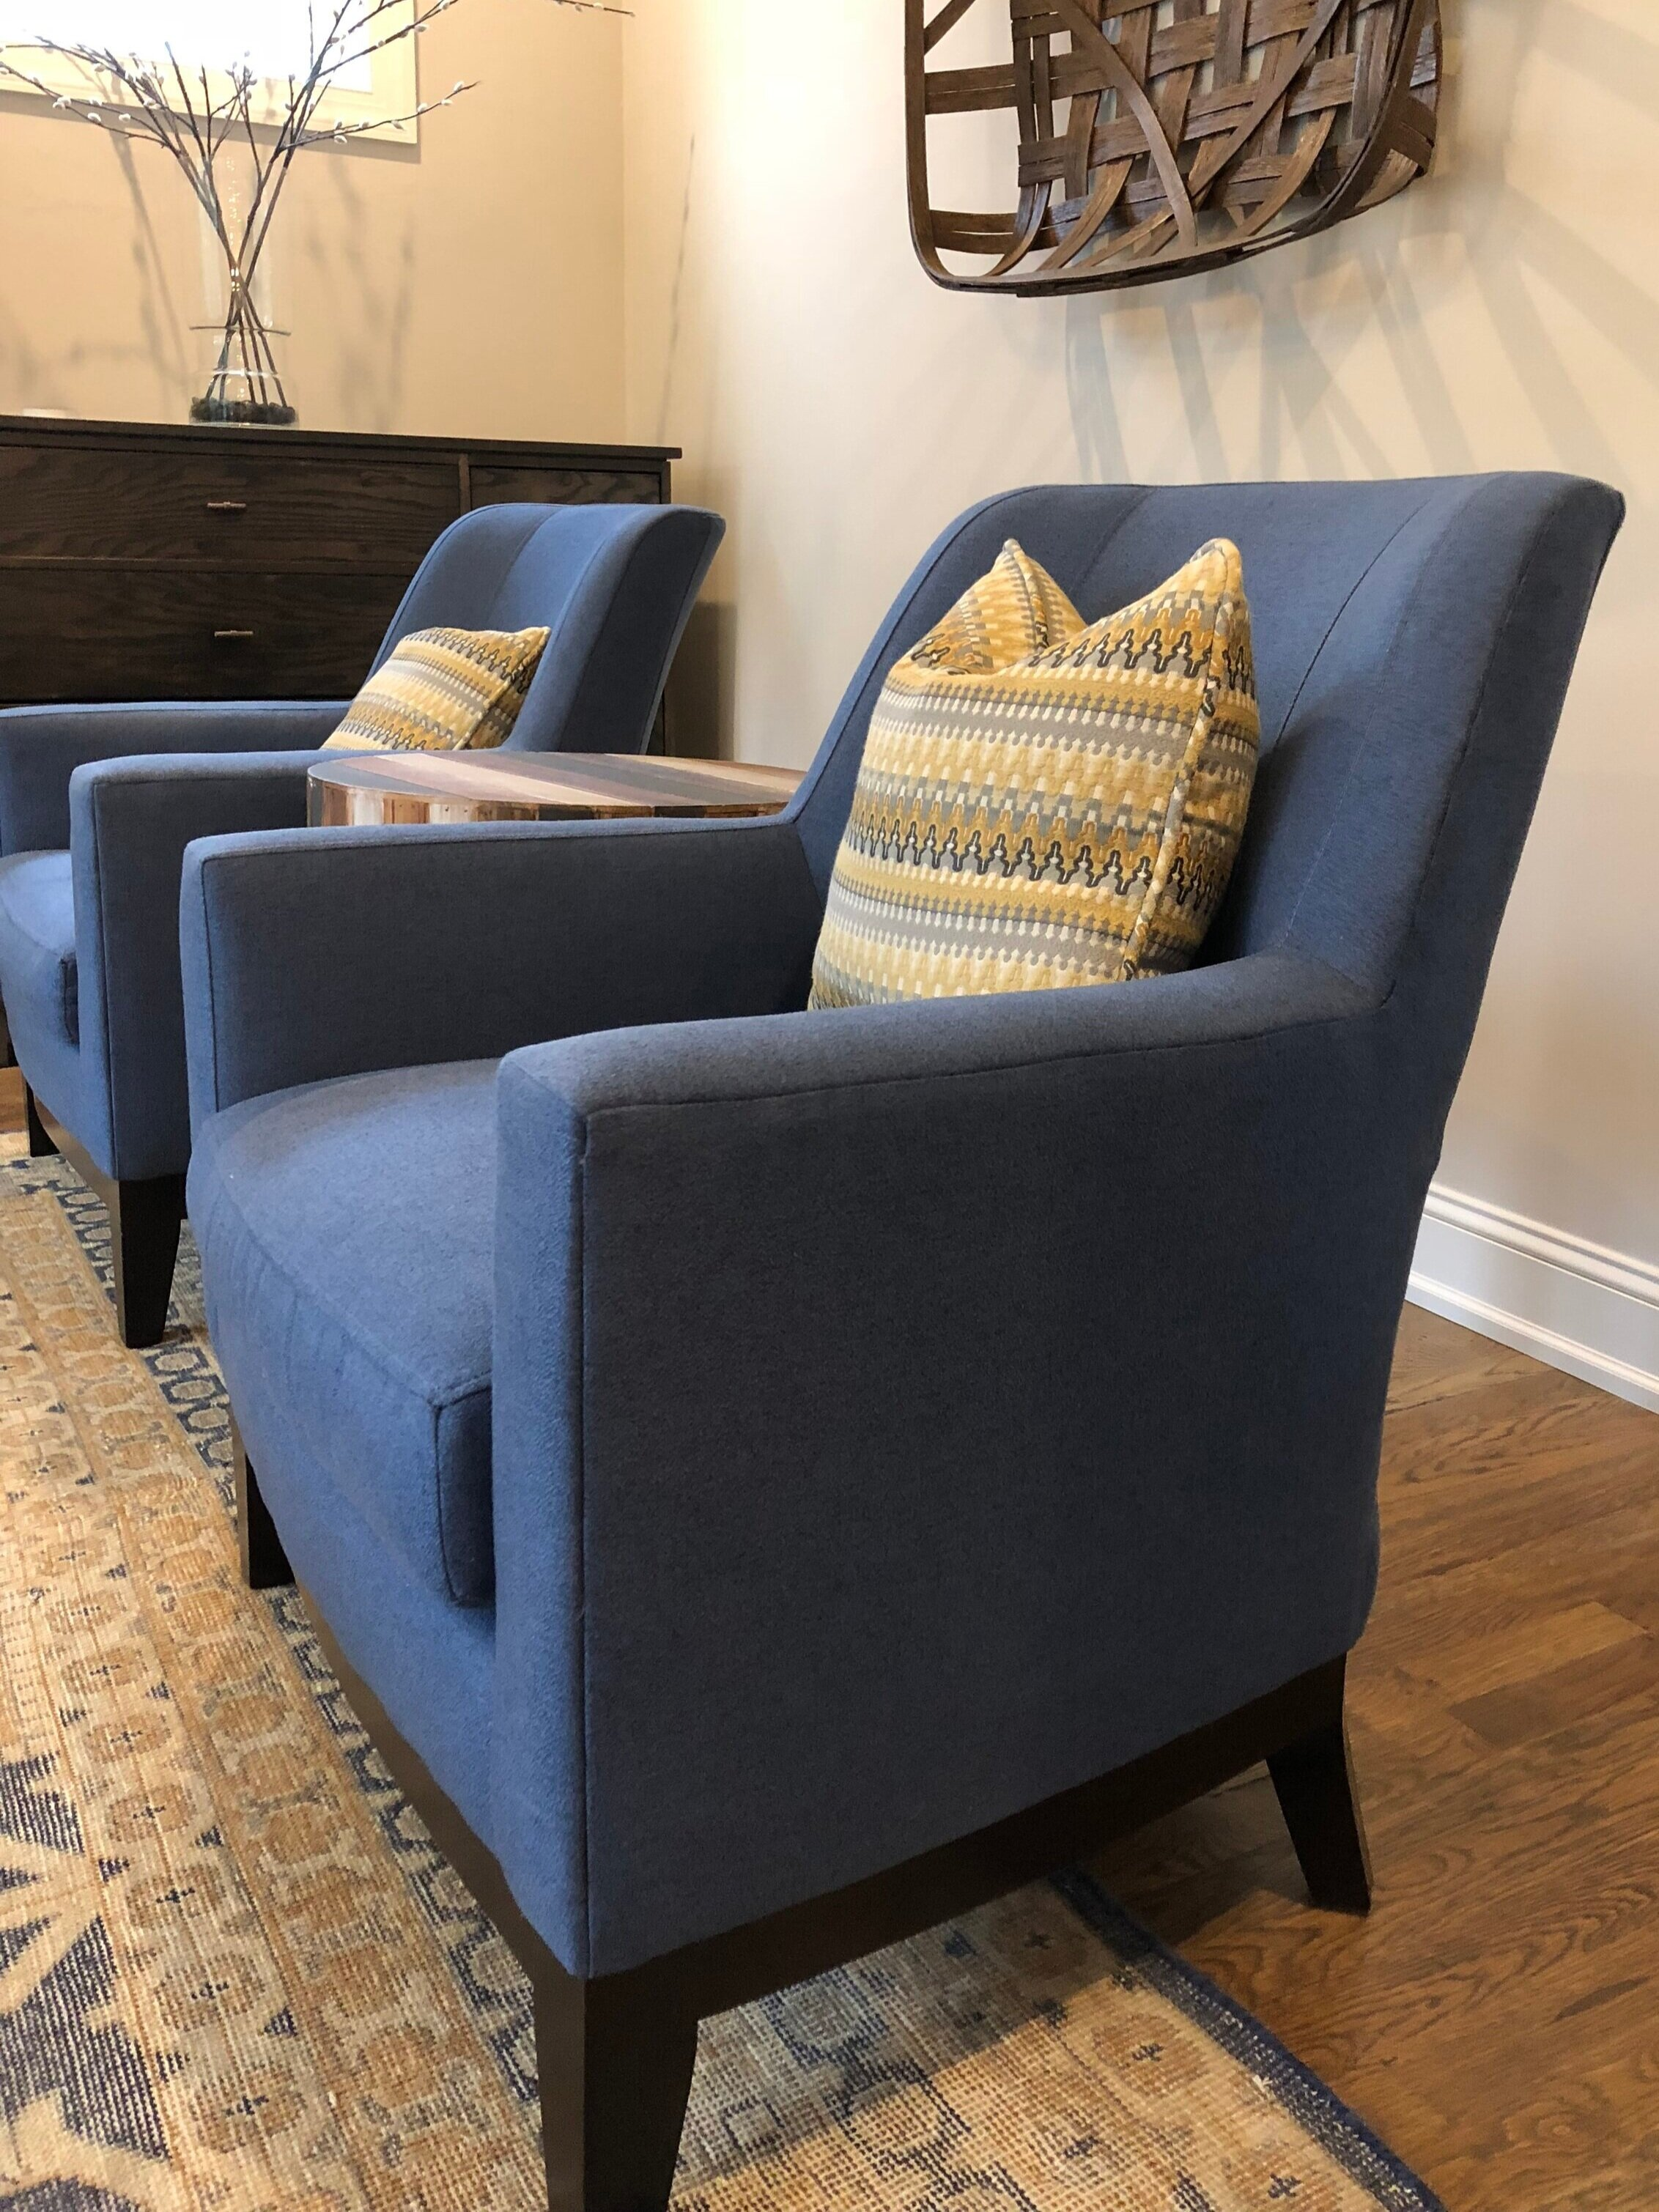 Sitting area in open concept plan. Photo via First Impressions.